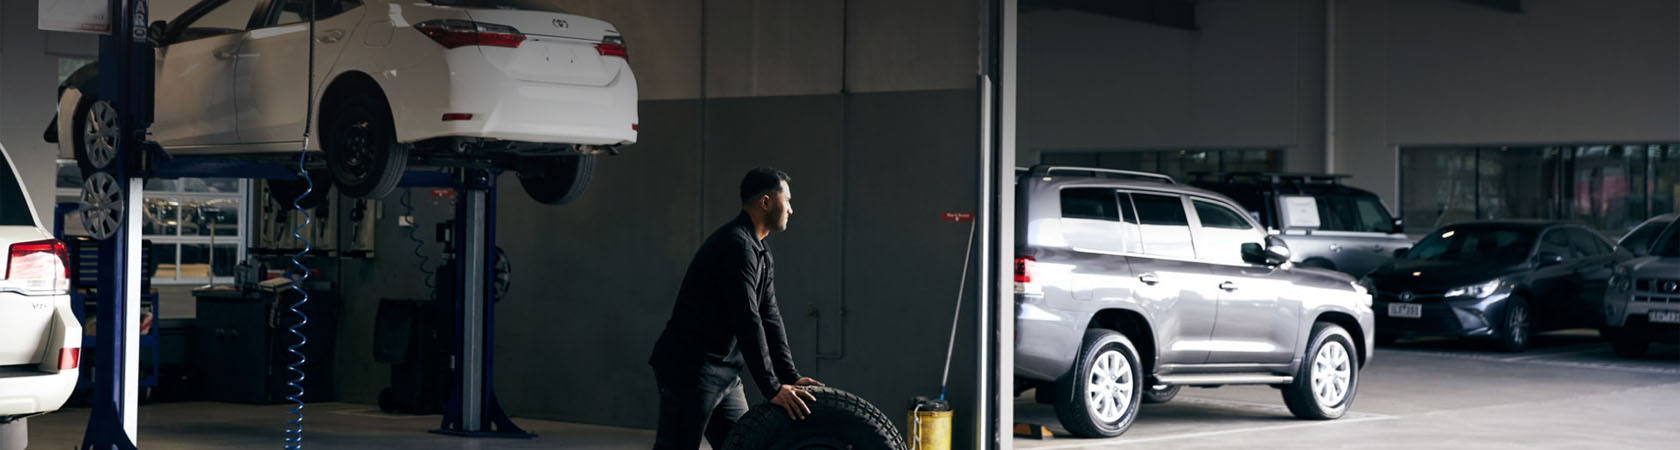 Peter Kittle Toyota - Port Lincoln Vehicle Service